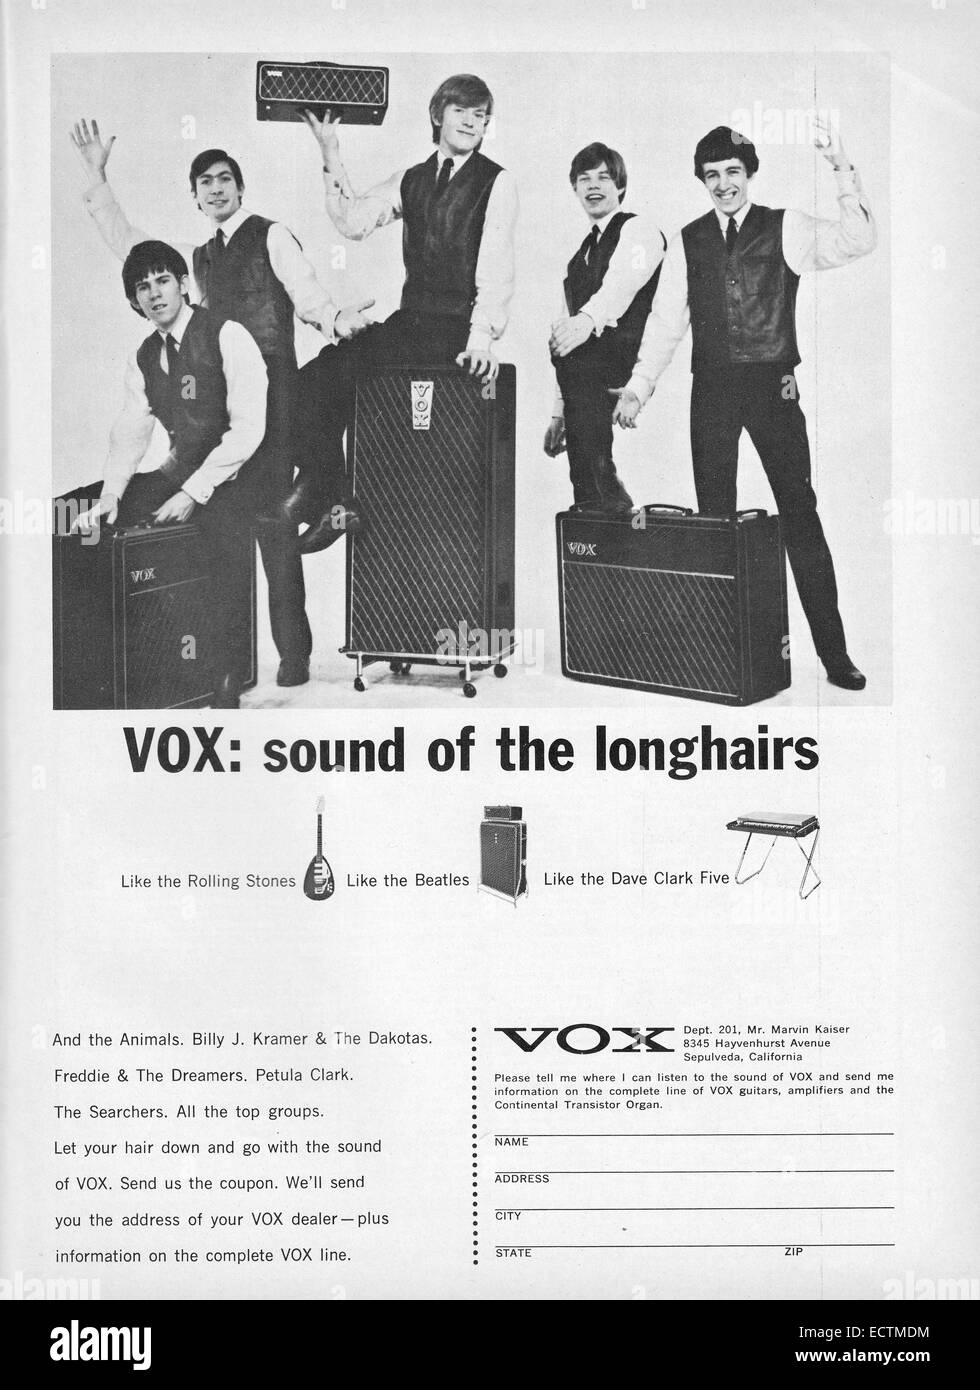 A scan of an advertisement for Vox amplifiers featuring the Rolling Stones. From a 1965 issue of Down Beat magazine. - Stock Image